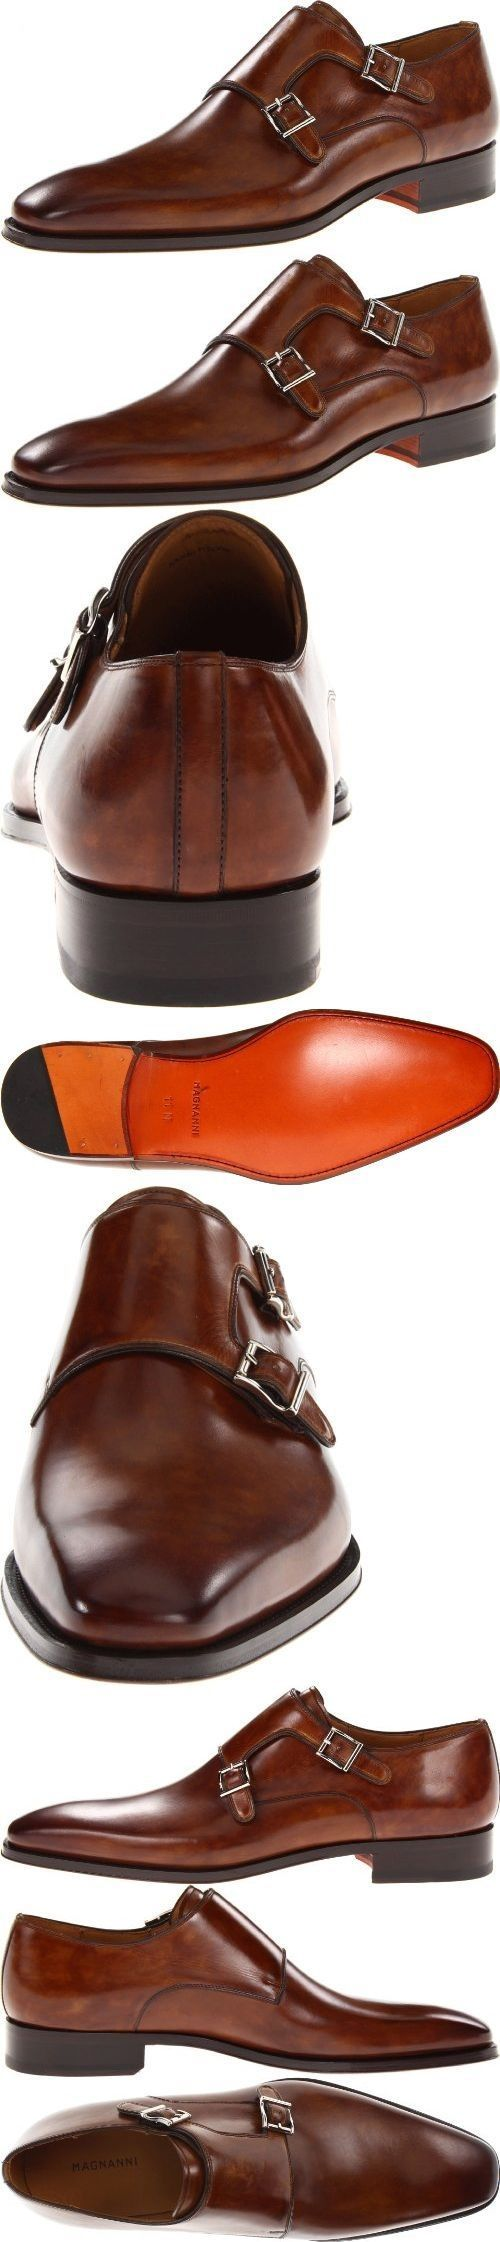 Magnanni - Soles for your soul.